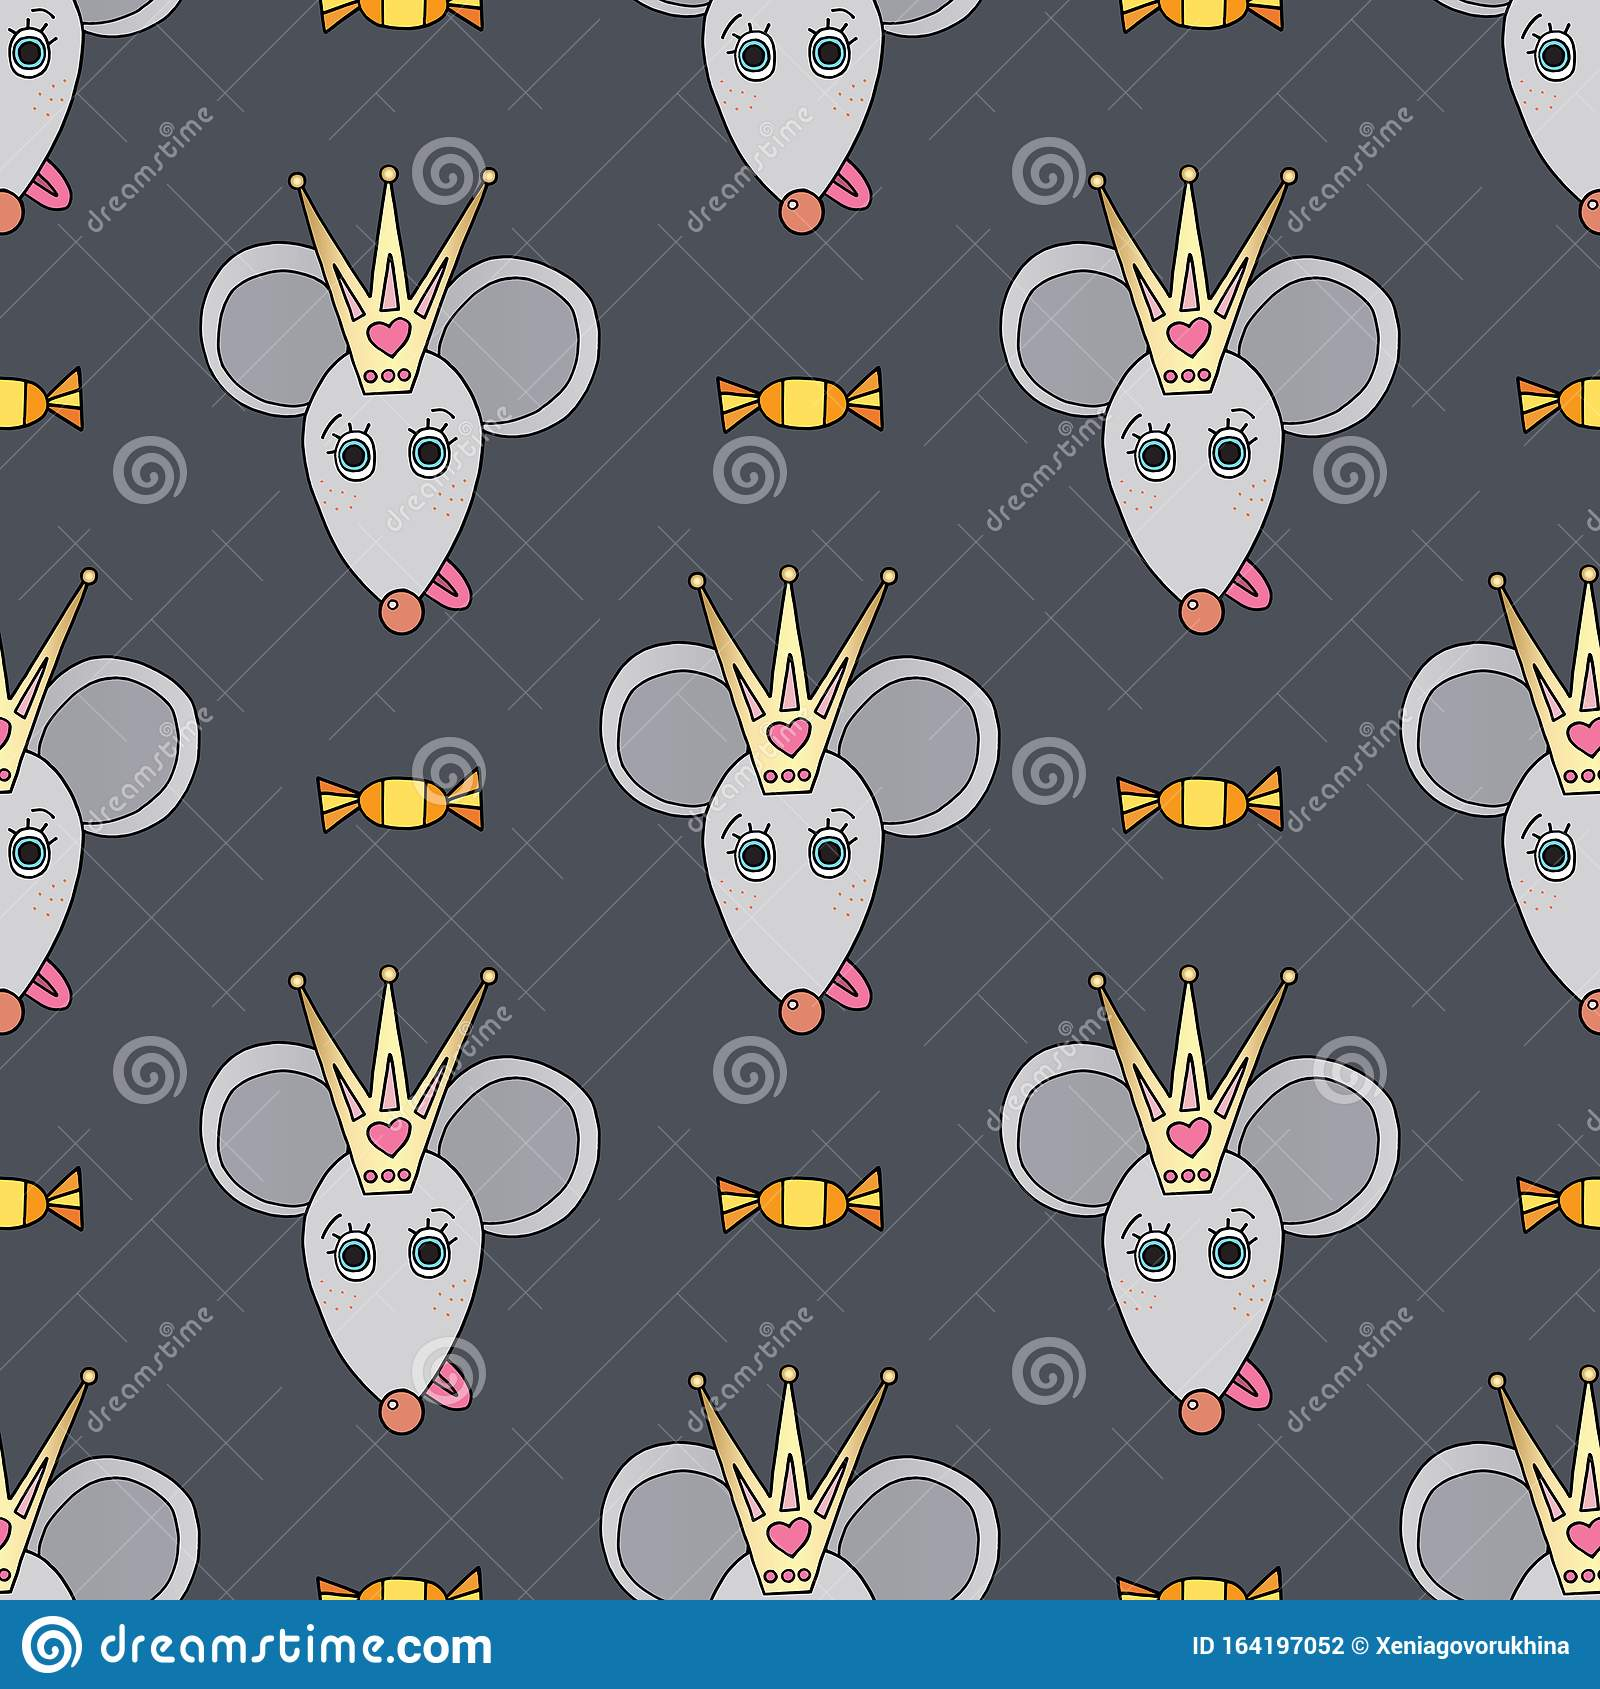 Rat Funny Character Vector Seamless Pattern Mouse Animal With Candies Crown Hand Drawn Cartoon Cute Pets Background Stock Vector Illustration Of Design Childish 164197052 It says so it right in the title, but it's also difficult to remember alvin is a chipmunk. dreamstime com